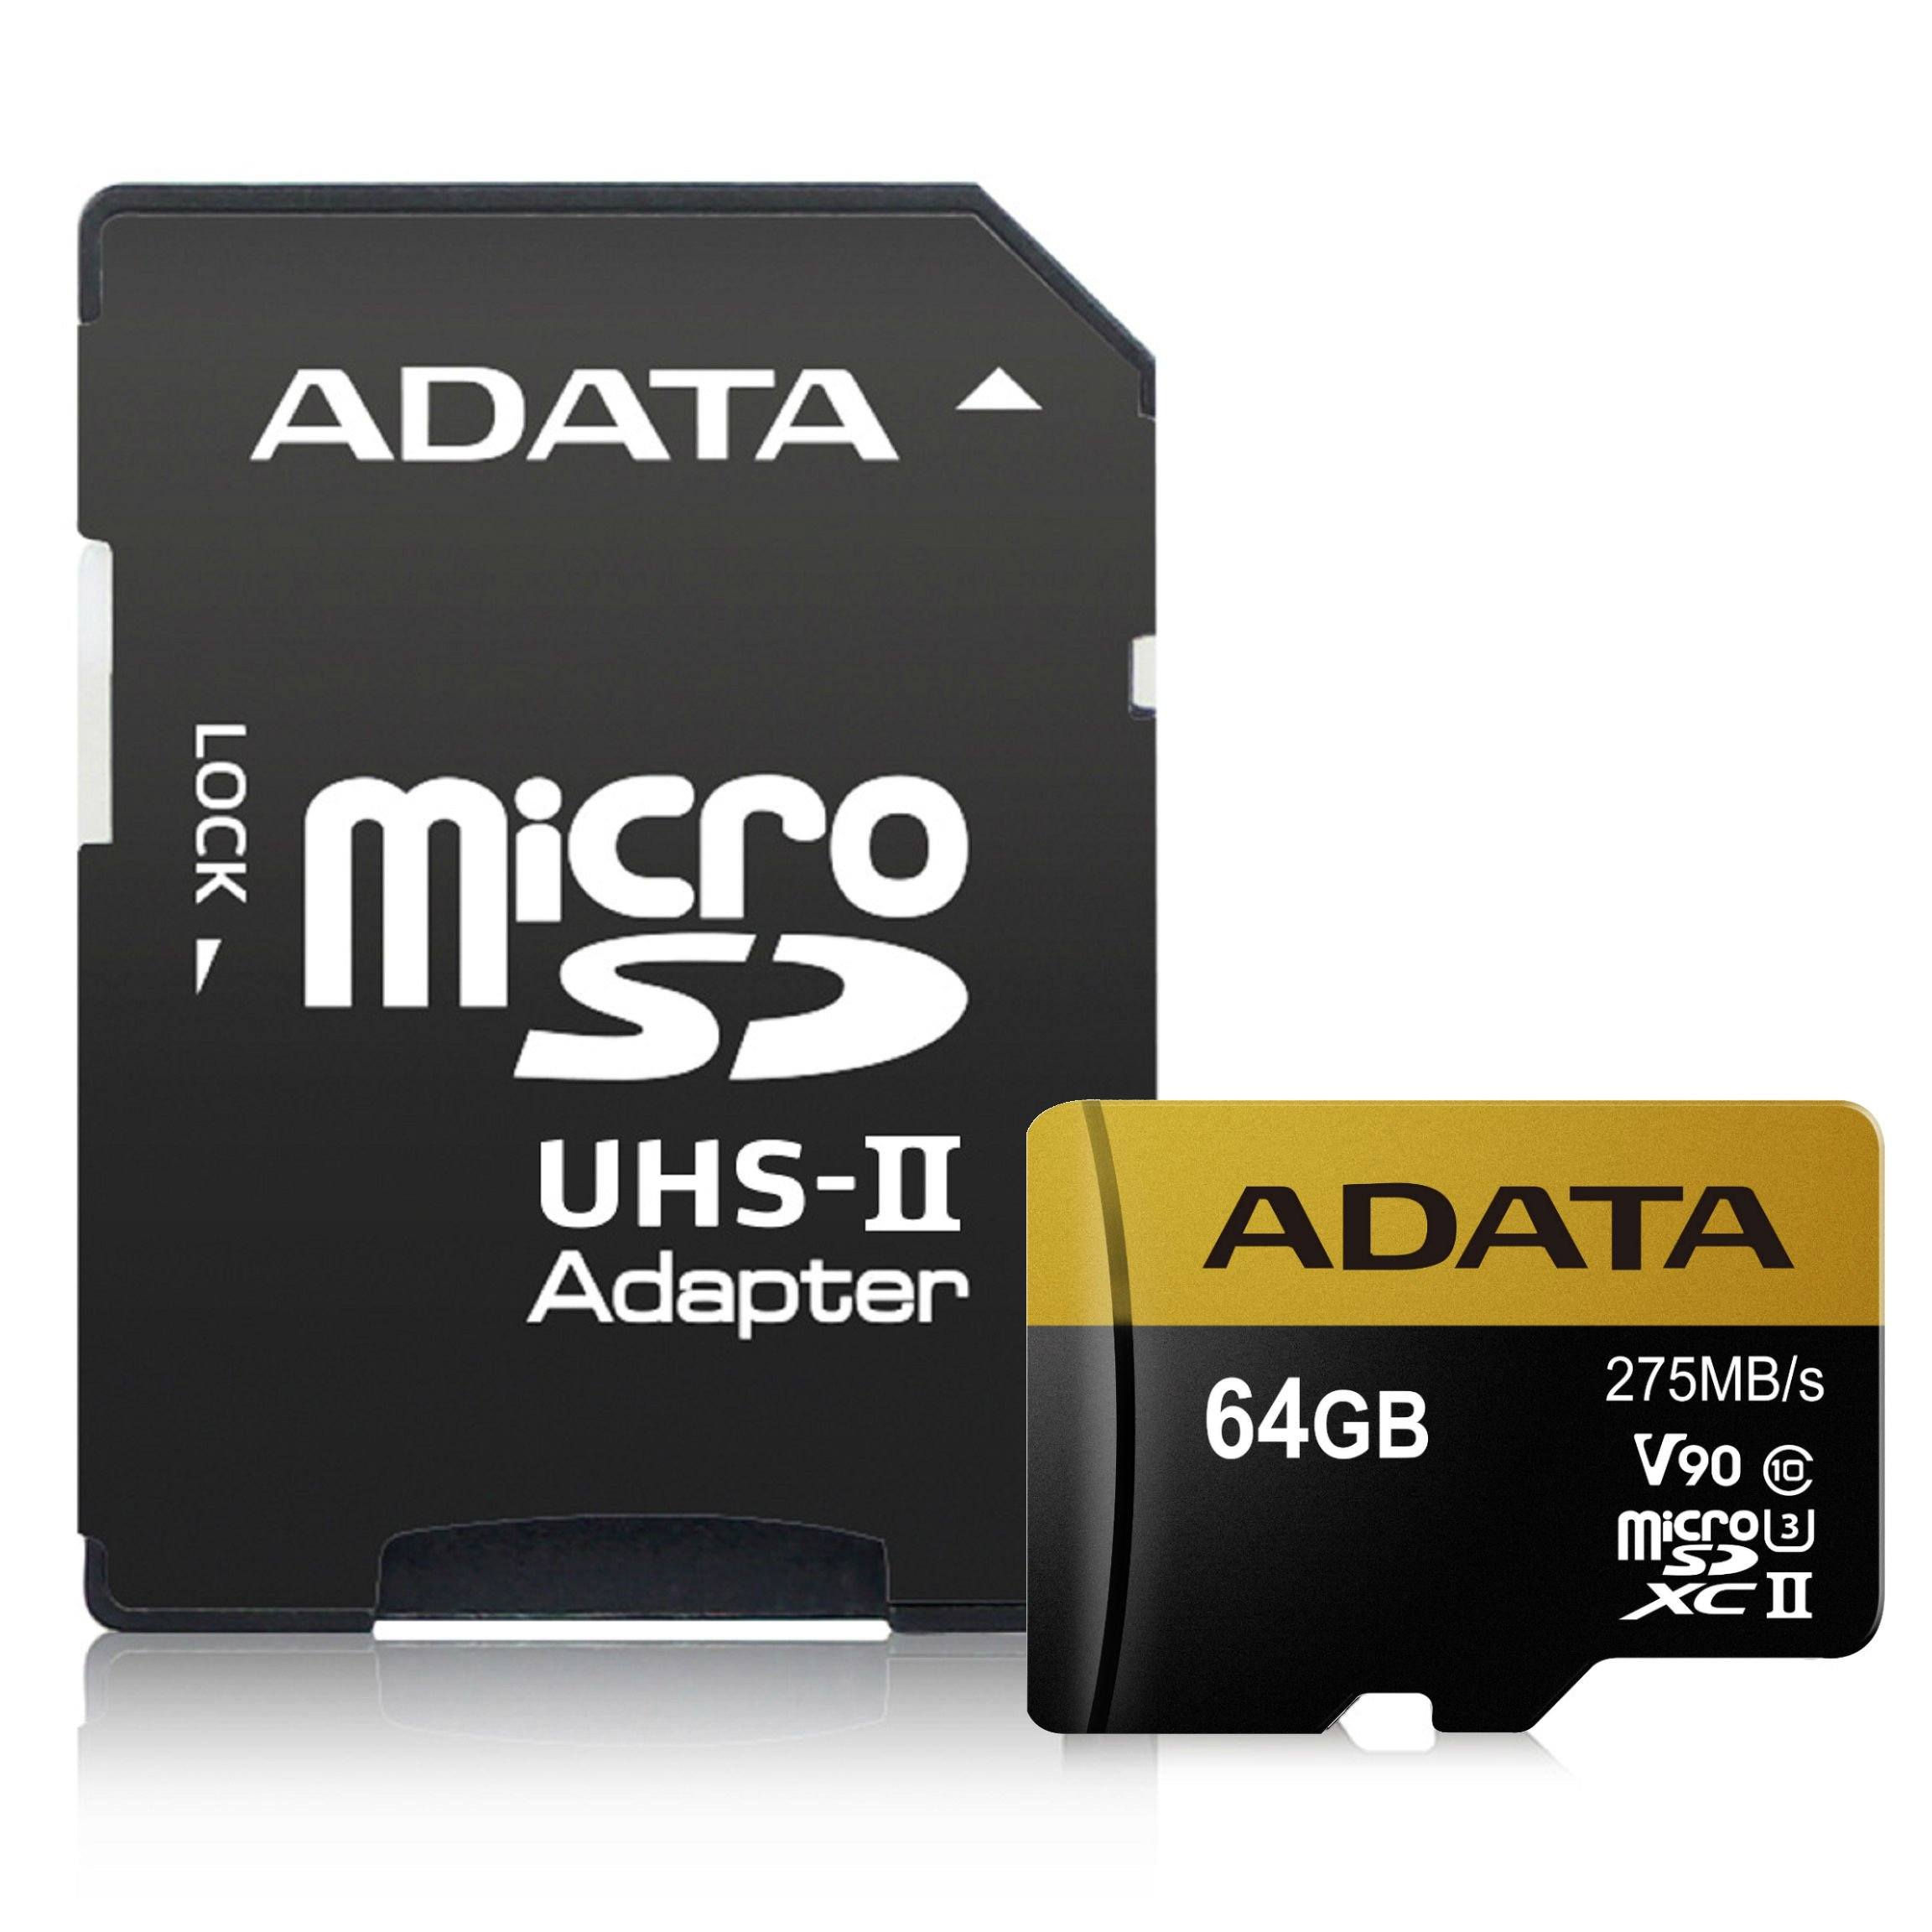 ADATA Premier ONE 64GB SDXC UHS-II U3 Class10 V90 3D NAND 4K 8K Ultra HD 275MB/s Micro SD Card with Adapter (AUSDX64GUII3CL10-CA1)